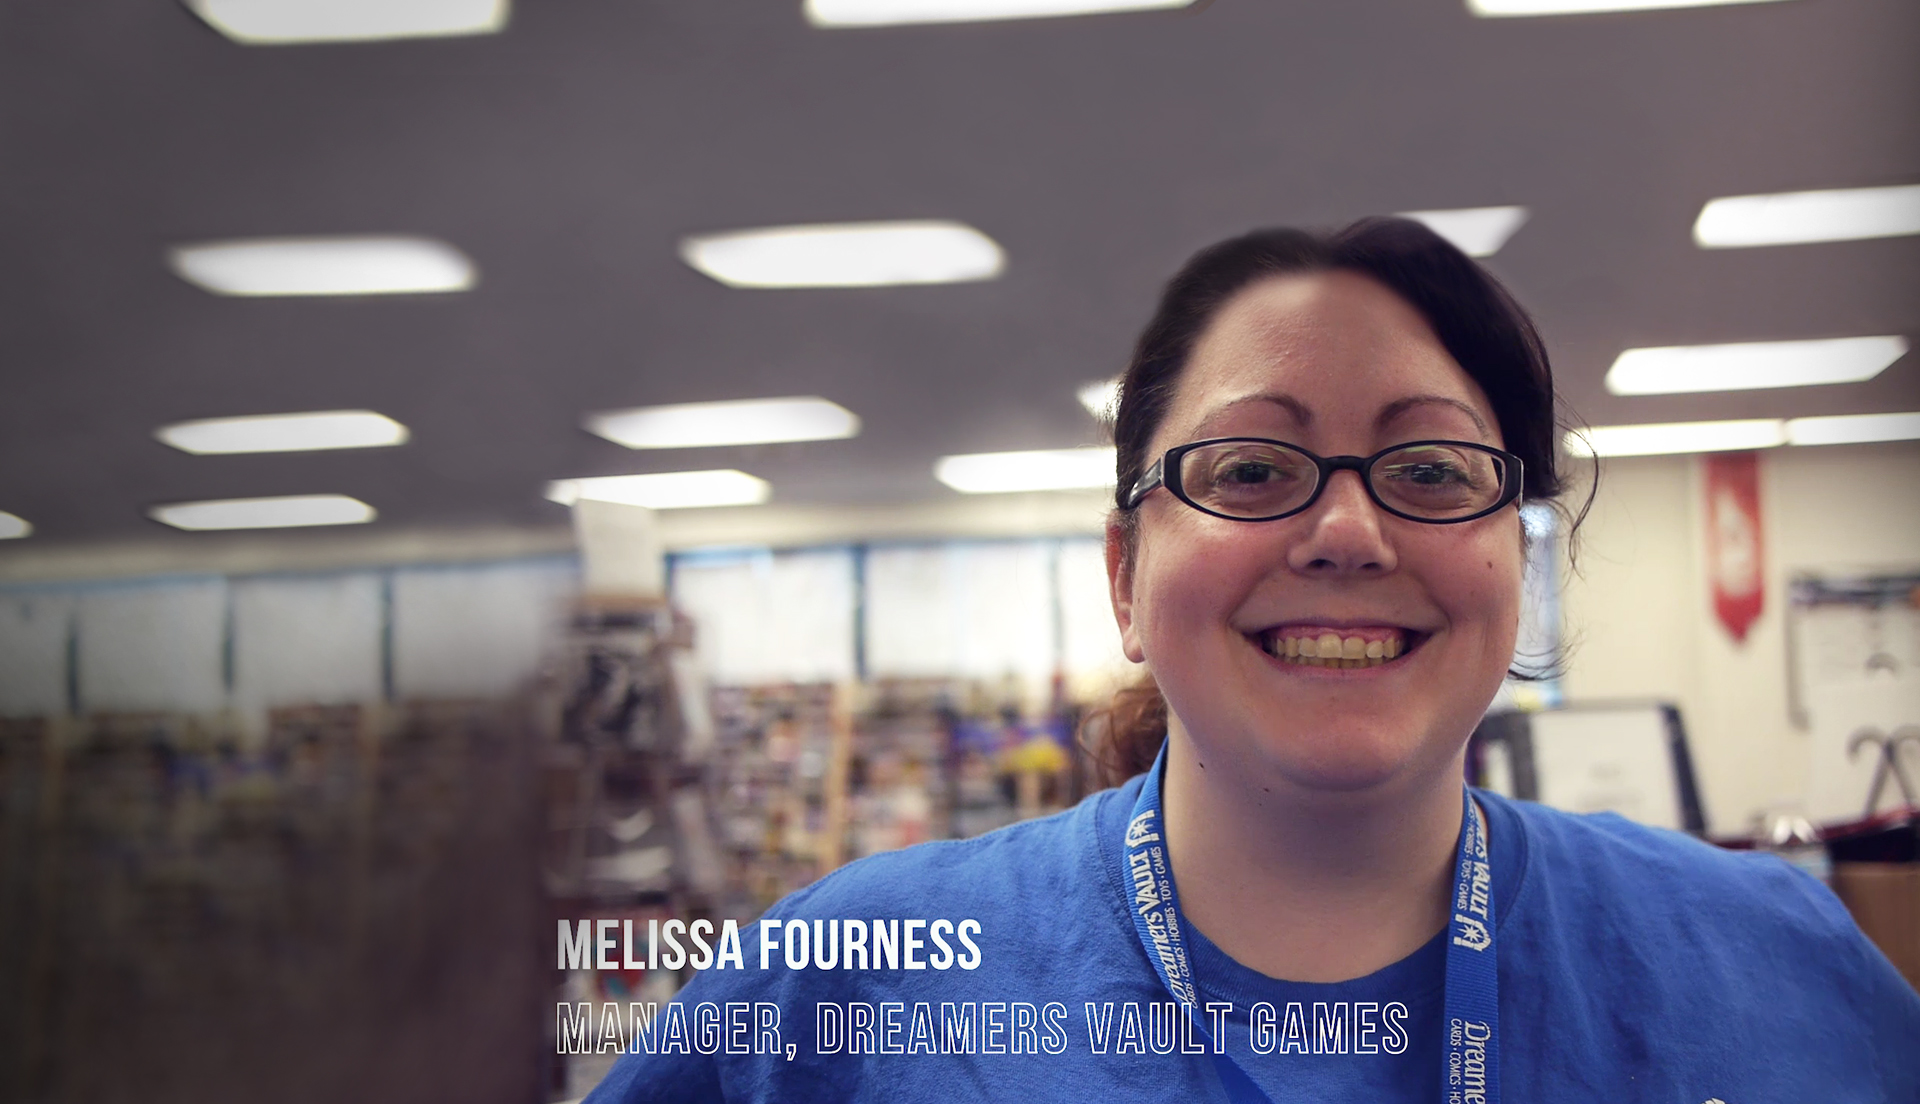 Header image, Melissa Fourness of Dreamers Vault Games